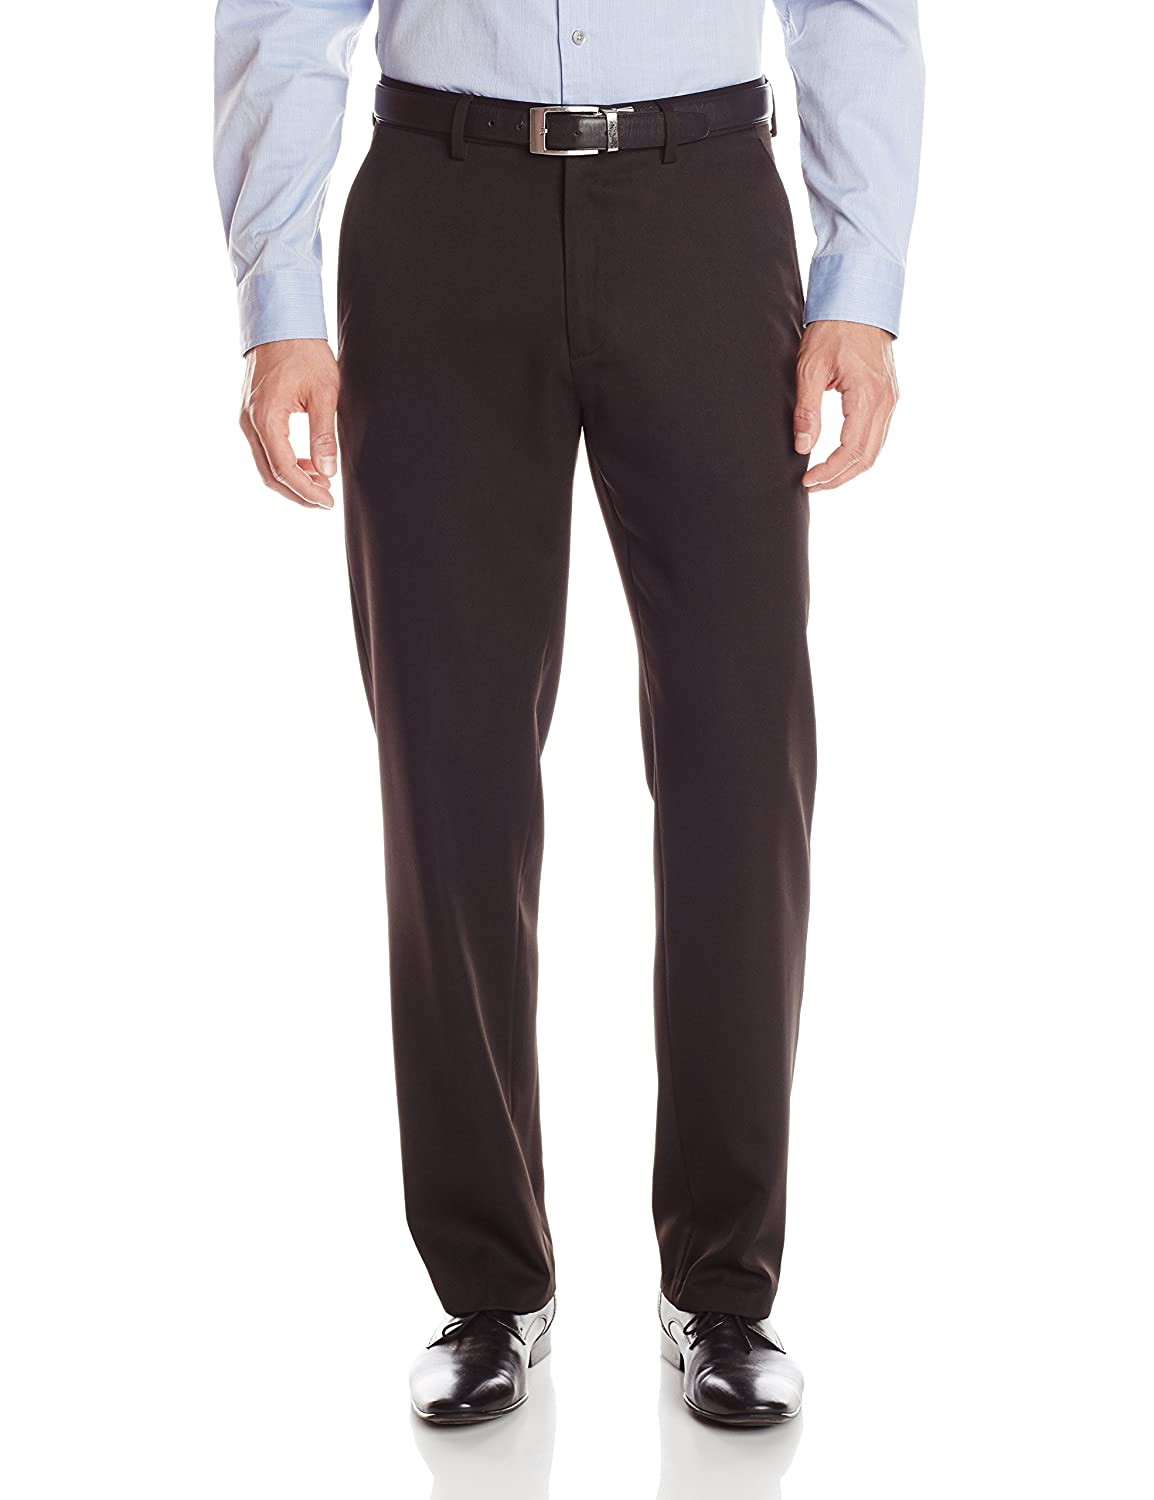 Haggar Men's Travel Performance Gabardine Tailored-Fit Suit Separate Pant Haggar Men' s Bottoms HY70276